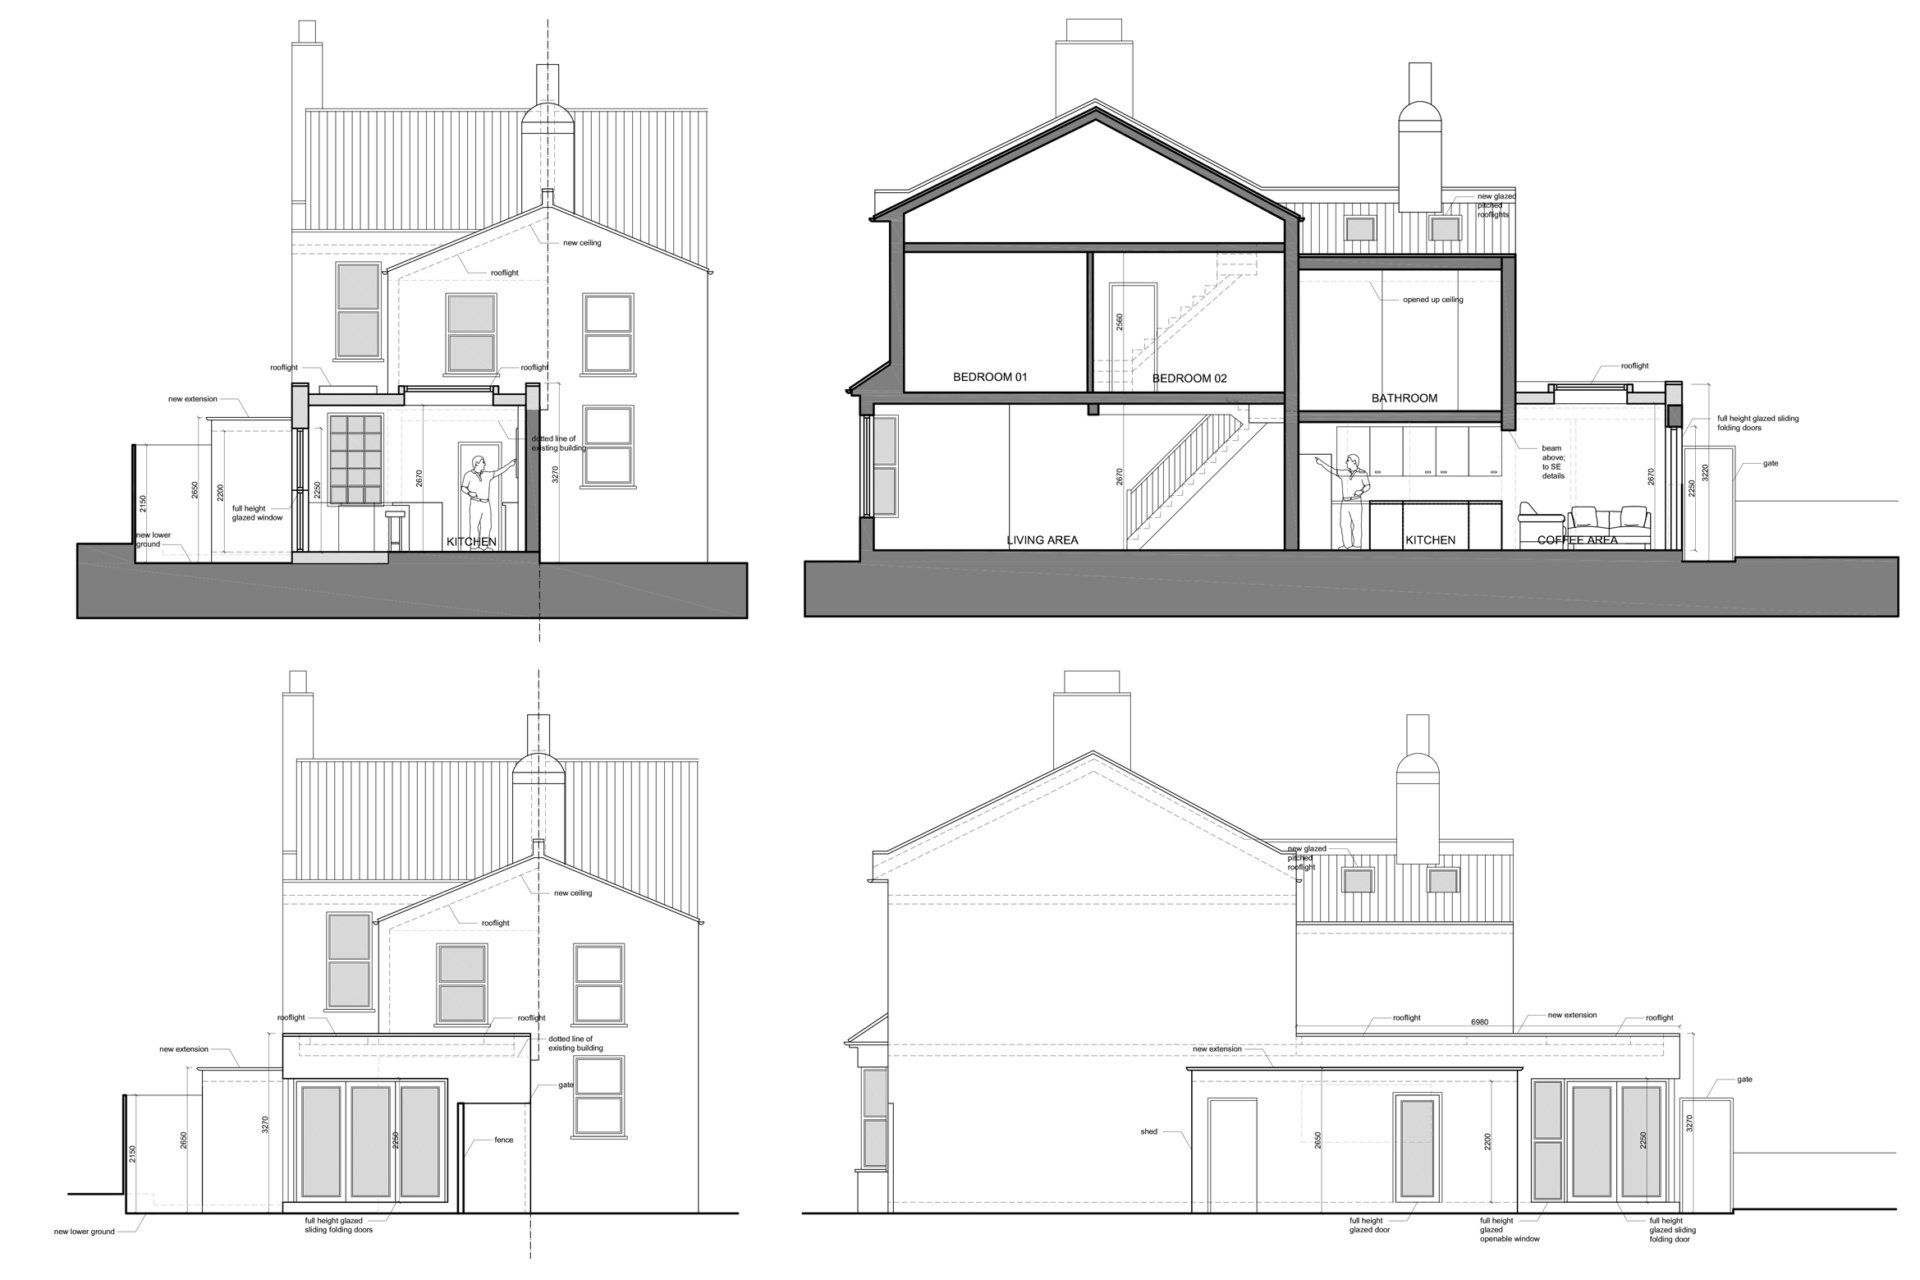 Enfield Chase EN2 Rear house extension refurbishment Sections and elevations Enfield Chase EN2 Rear house extension and refurbishment